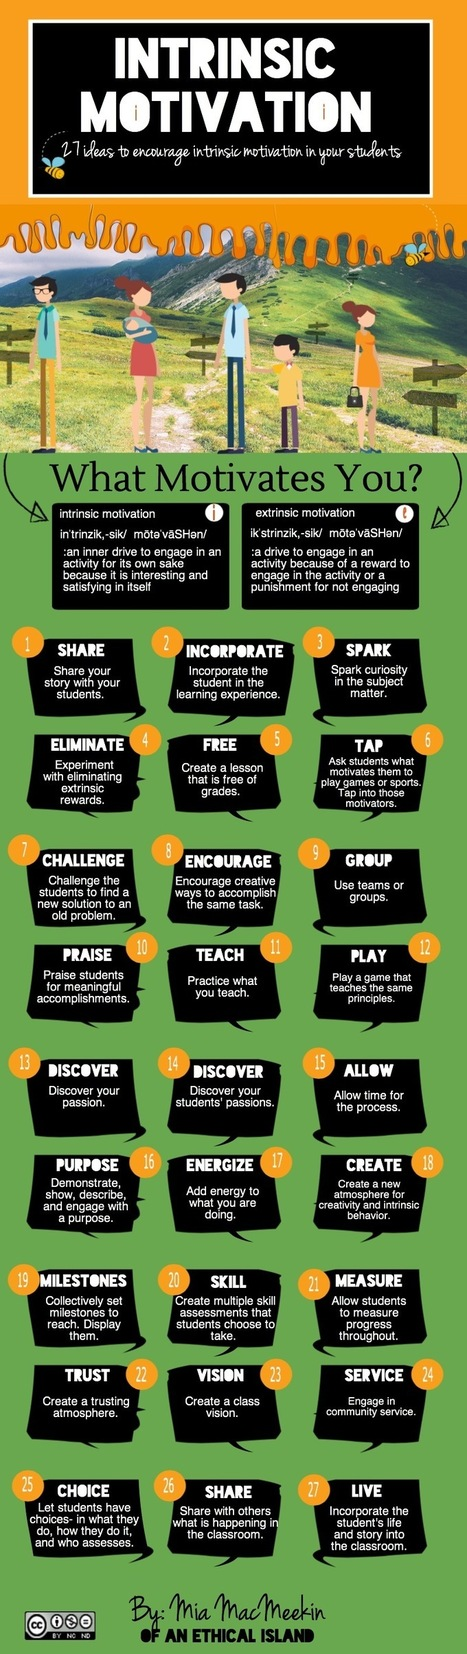 Intrinsic Motivation for the Classroom - Infographic | Inteligencia Colectiva | Scoop.it